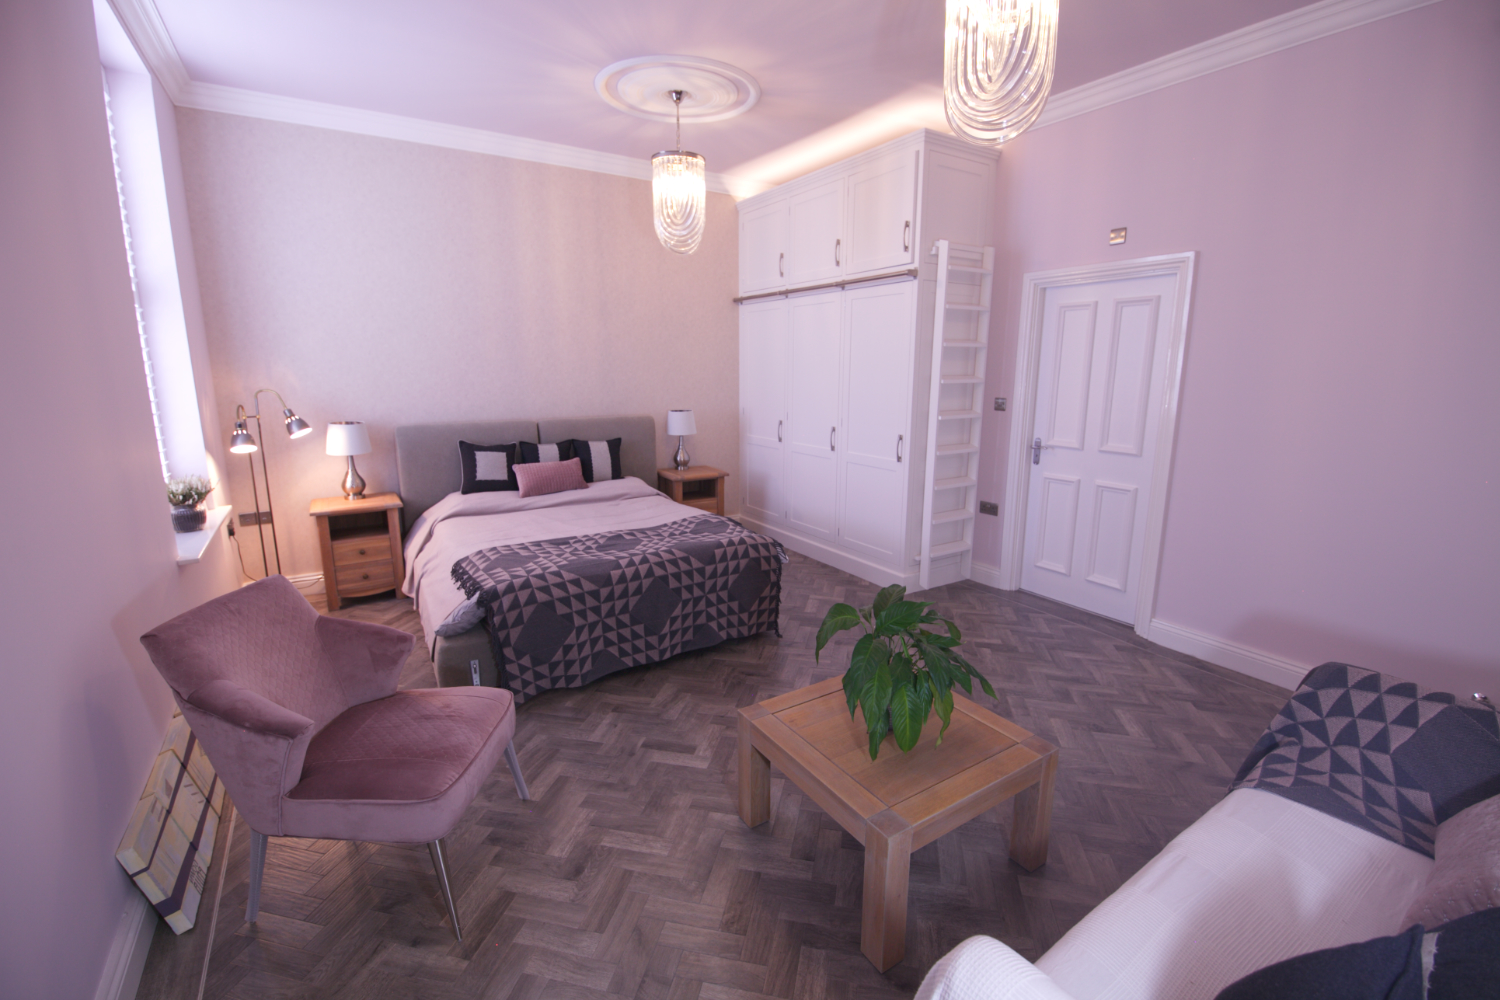 Pretty spare room with parquet floor